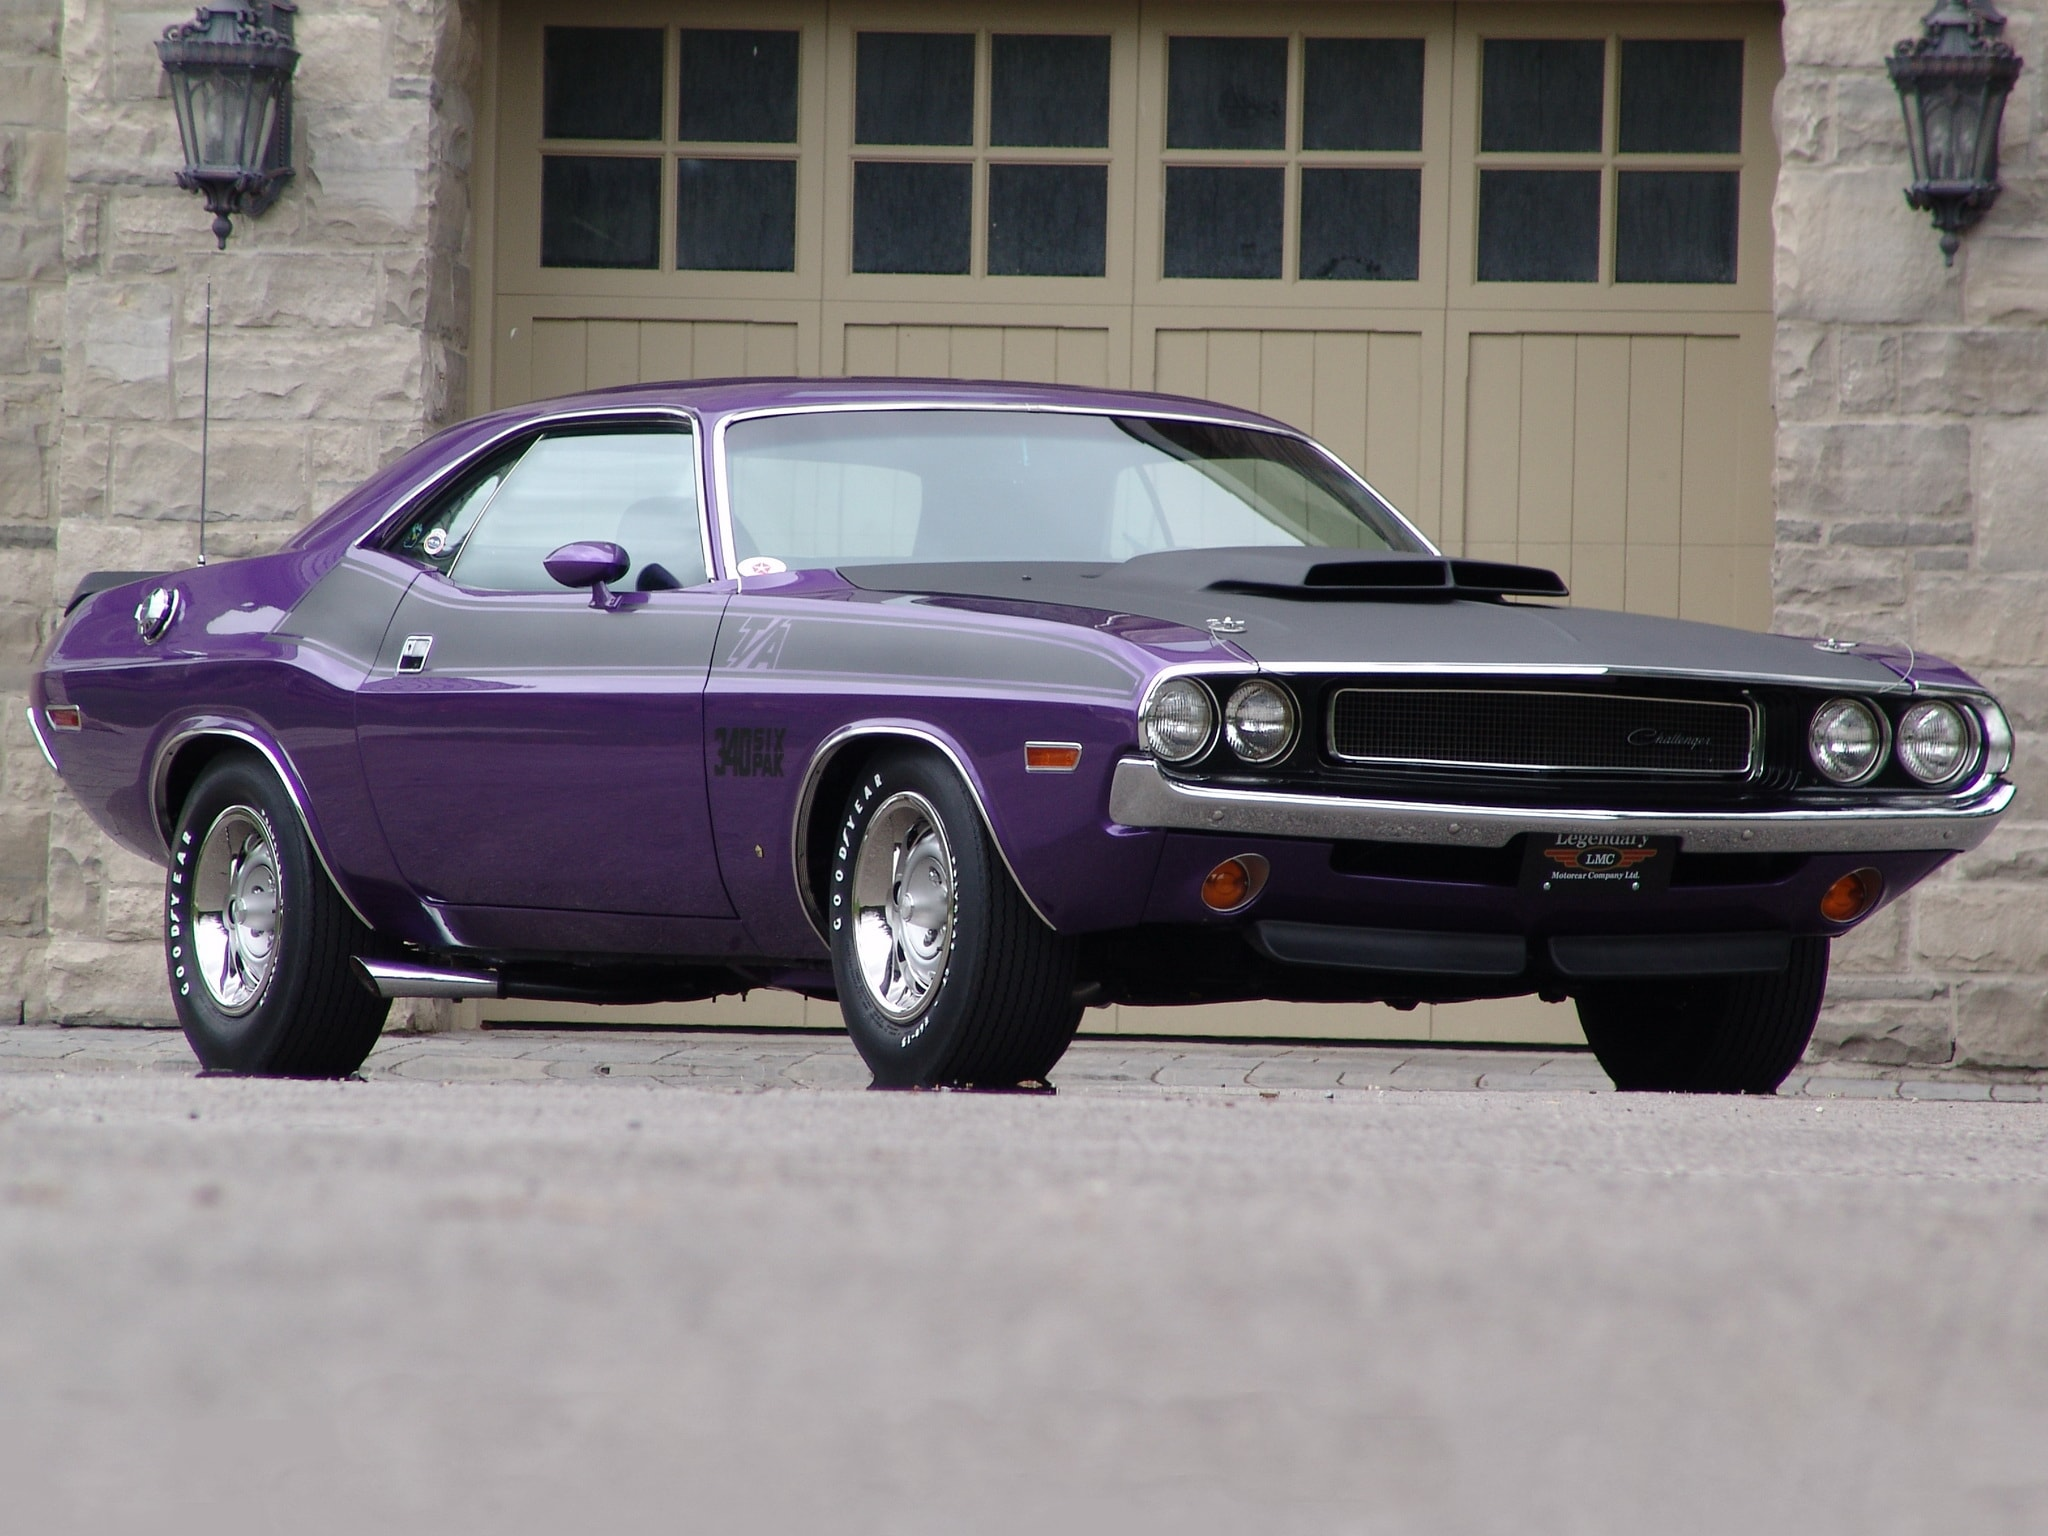 1970 Dodge Challenger T/A widescreen wallpapers